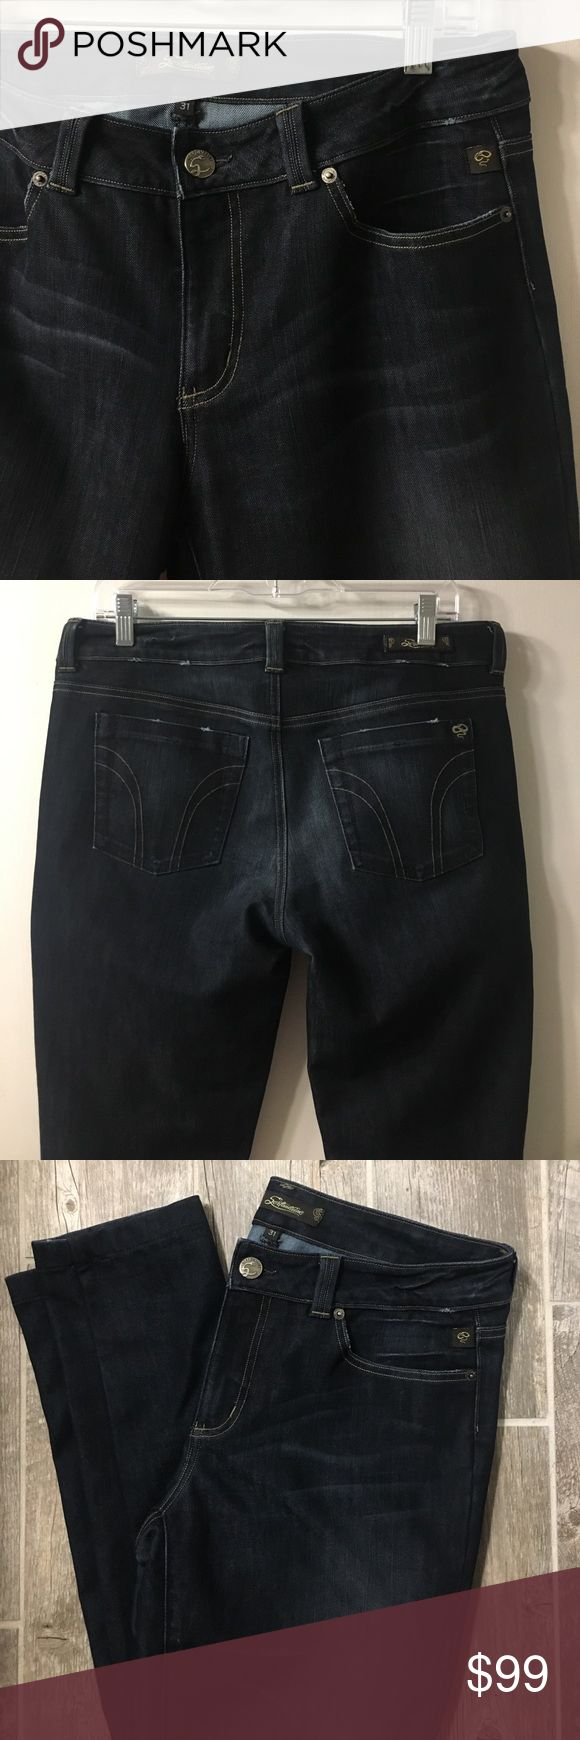 Serfontaine size 31 Dark Skinny Jeans Dark denim, skinny cut, light tan lines stitched on back pockets. 41 inches top to bottom. 9 inches crotch to zipper. 36 inches around waistband. Serfontaine Jeans Skinny